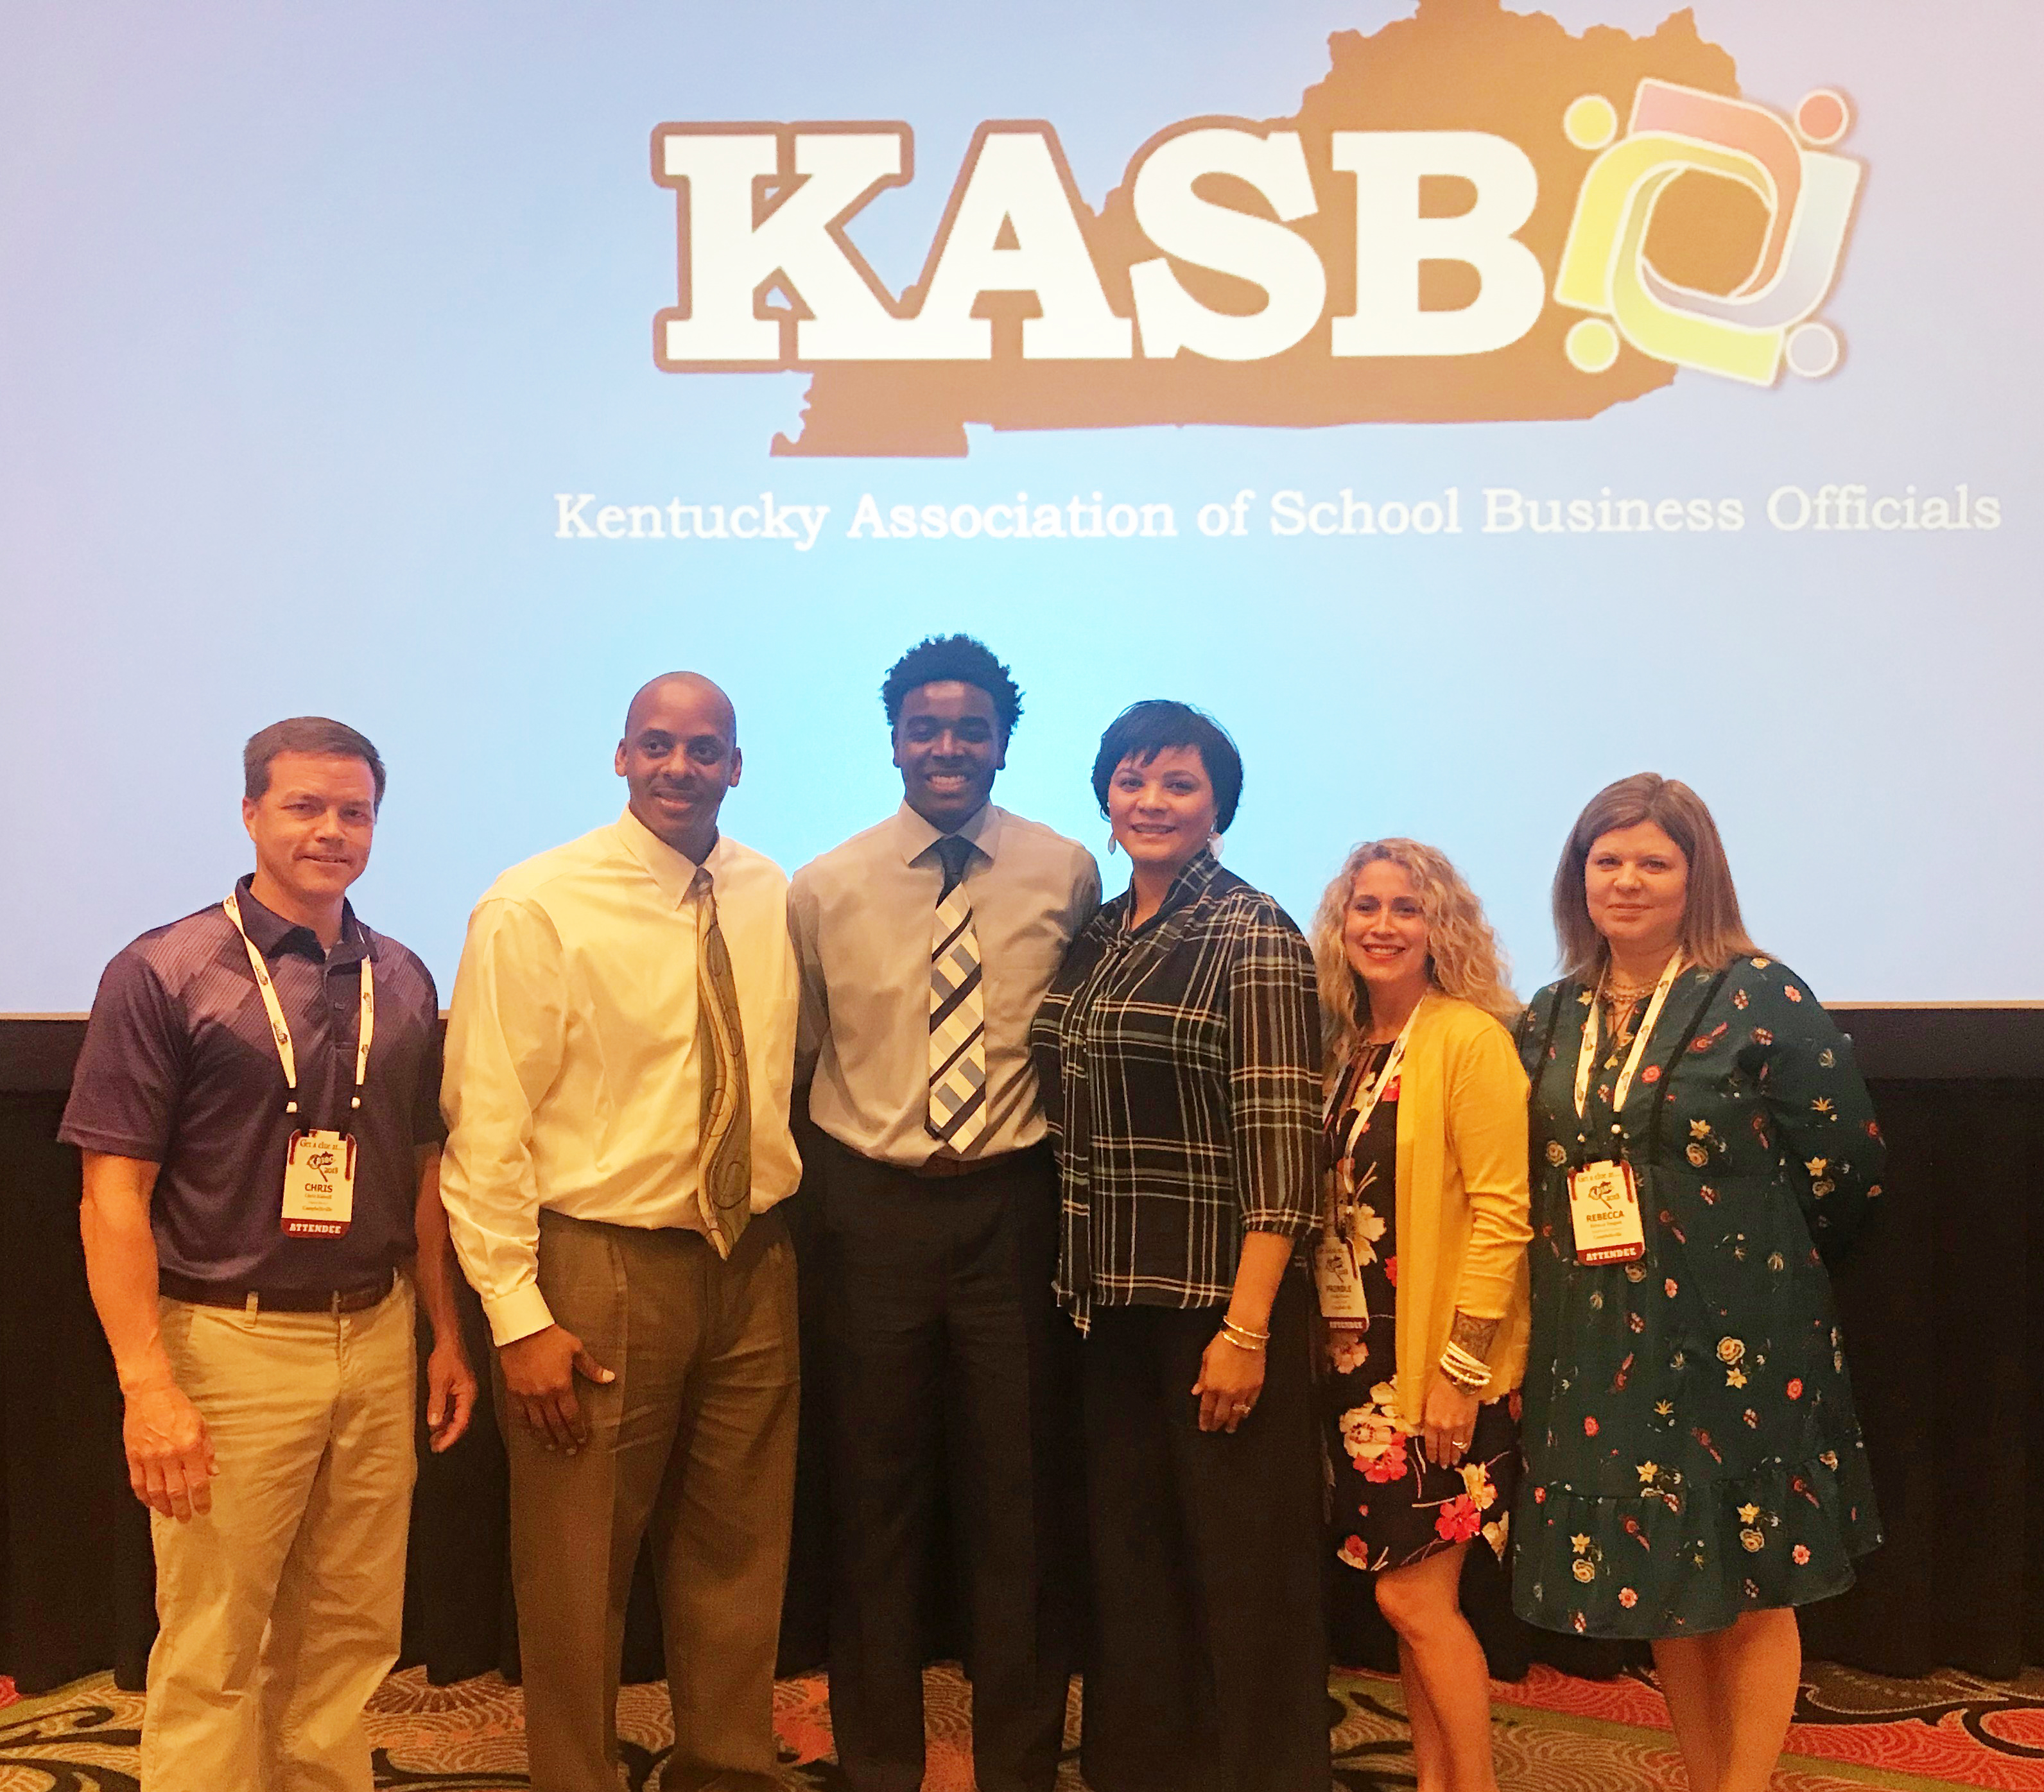 CHS senior Chanson Atkinson has received a scholarship from the Kentucky Association of School Business Officials. He was presented the scholarship at the KASBO spring conference at the Galt House in Louisville. From left are Campbellsville Independent Schools Associate Superintendent and Finance Director Chris Kidwell, Atkinson and his parents Al and Rochelle Brady, CIS Accounts Payable Prindle Hinton and CIS Payroll Clerk/Insurance Coordinator Rebecca Tungate.